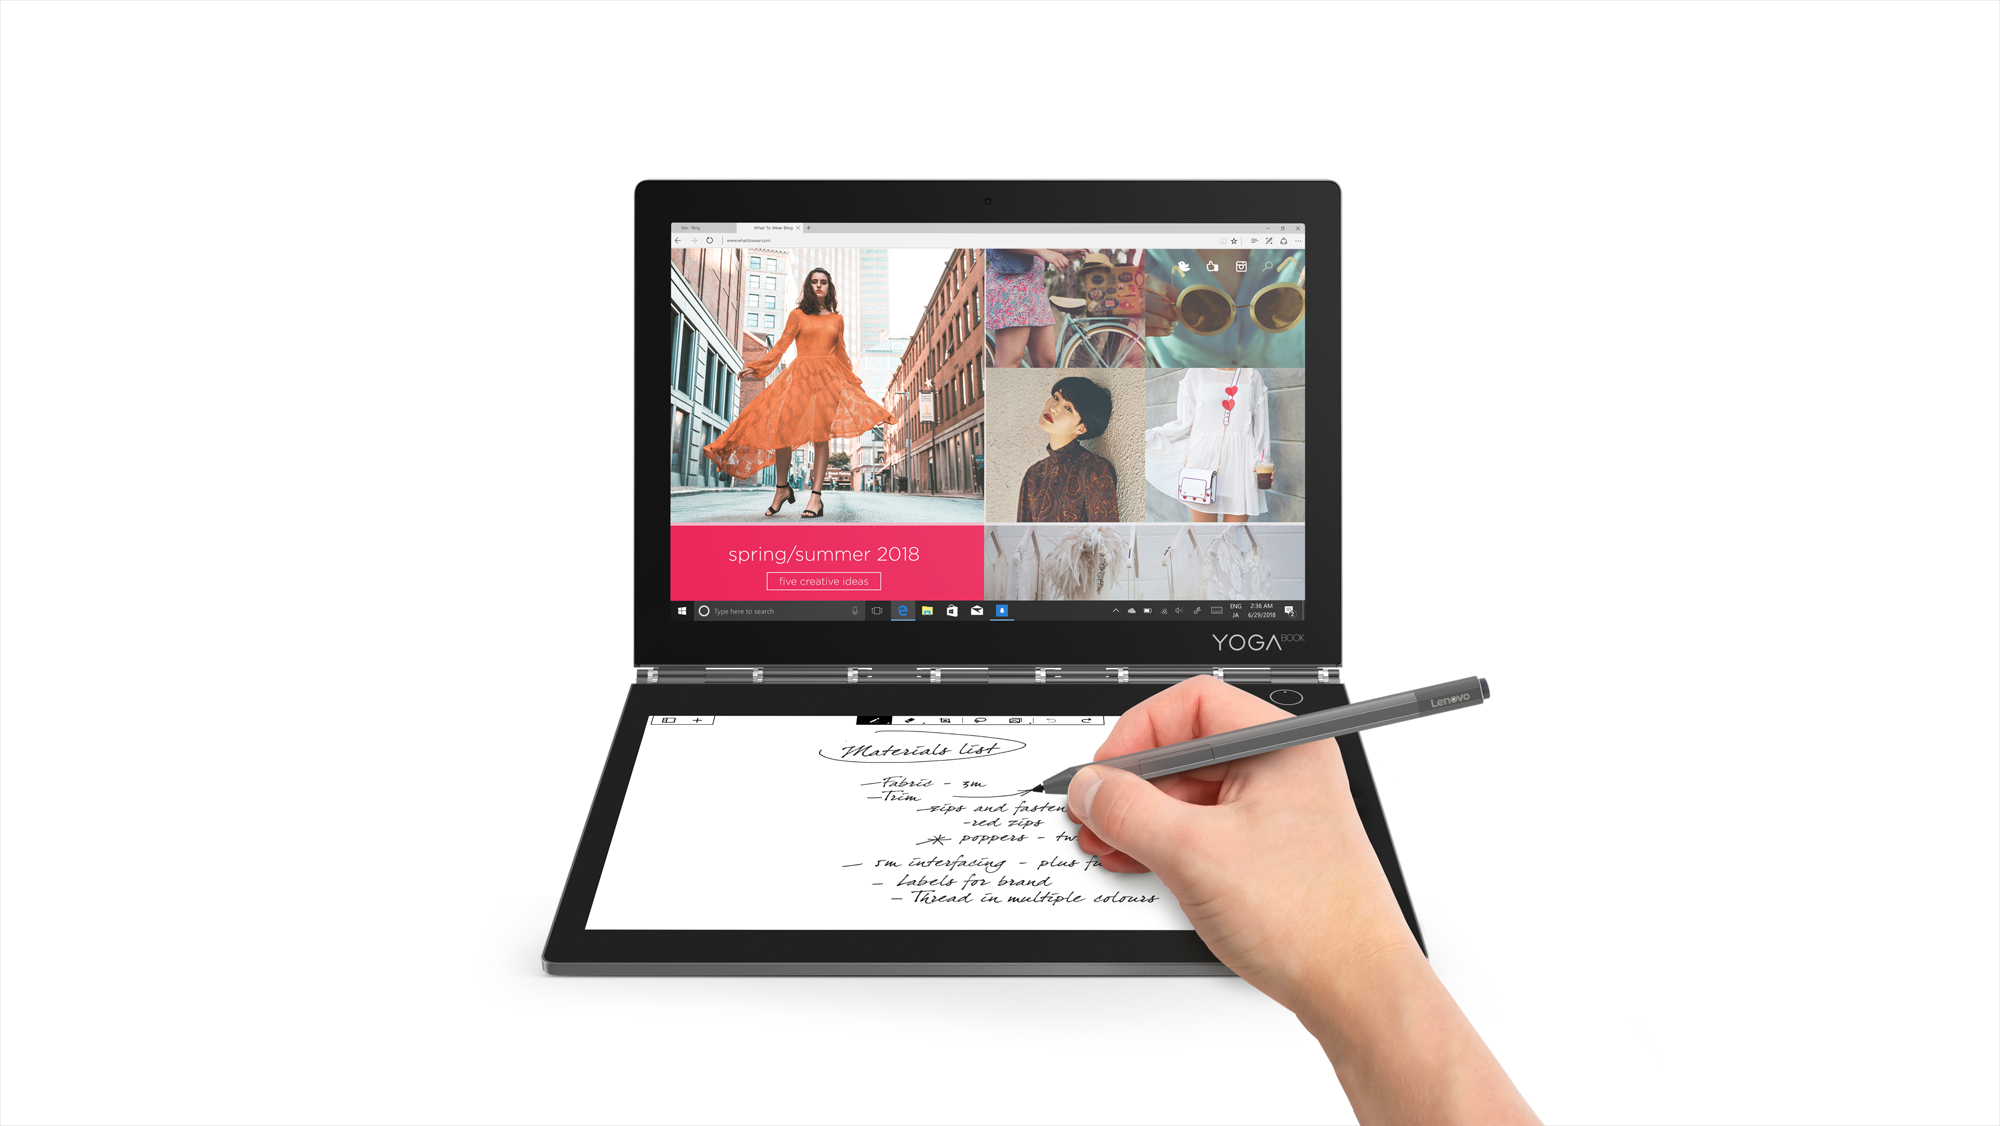 Lenovo Yoga Book C930 A Flexible User Friendly Gadget For The Whole Family The Filipino Times